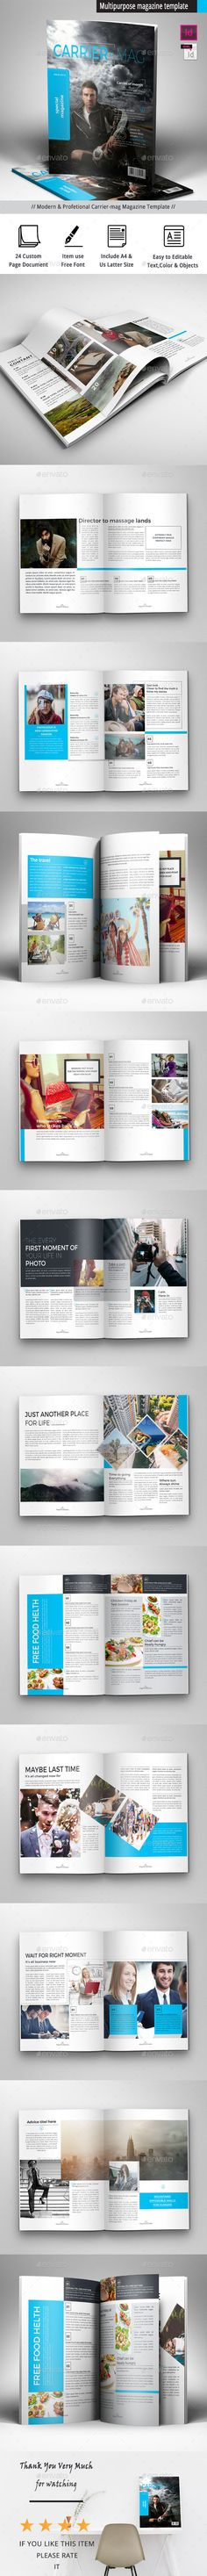 Buy Magazine Template by obayes on GraphicRiver. Brochure Description: Professional and clean InDesign magazine template. Includes 24 pages for articles, interviews,. Blog Templates Free, Indesign Magazine Templates, Print Templates, Cool Magazine, Print Magazine, Magazine Design, Sport Fashion, Trendy Fashion, Fall Fashion